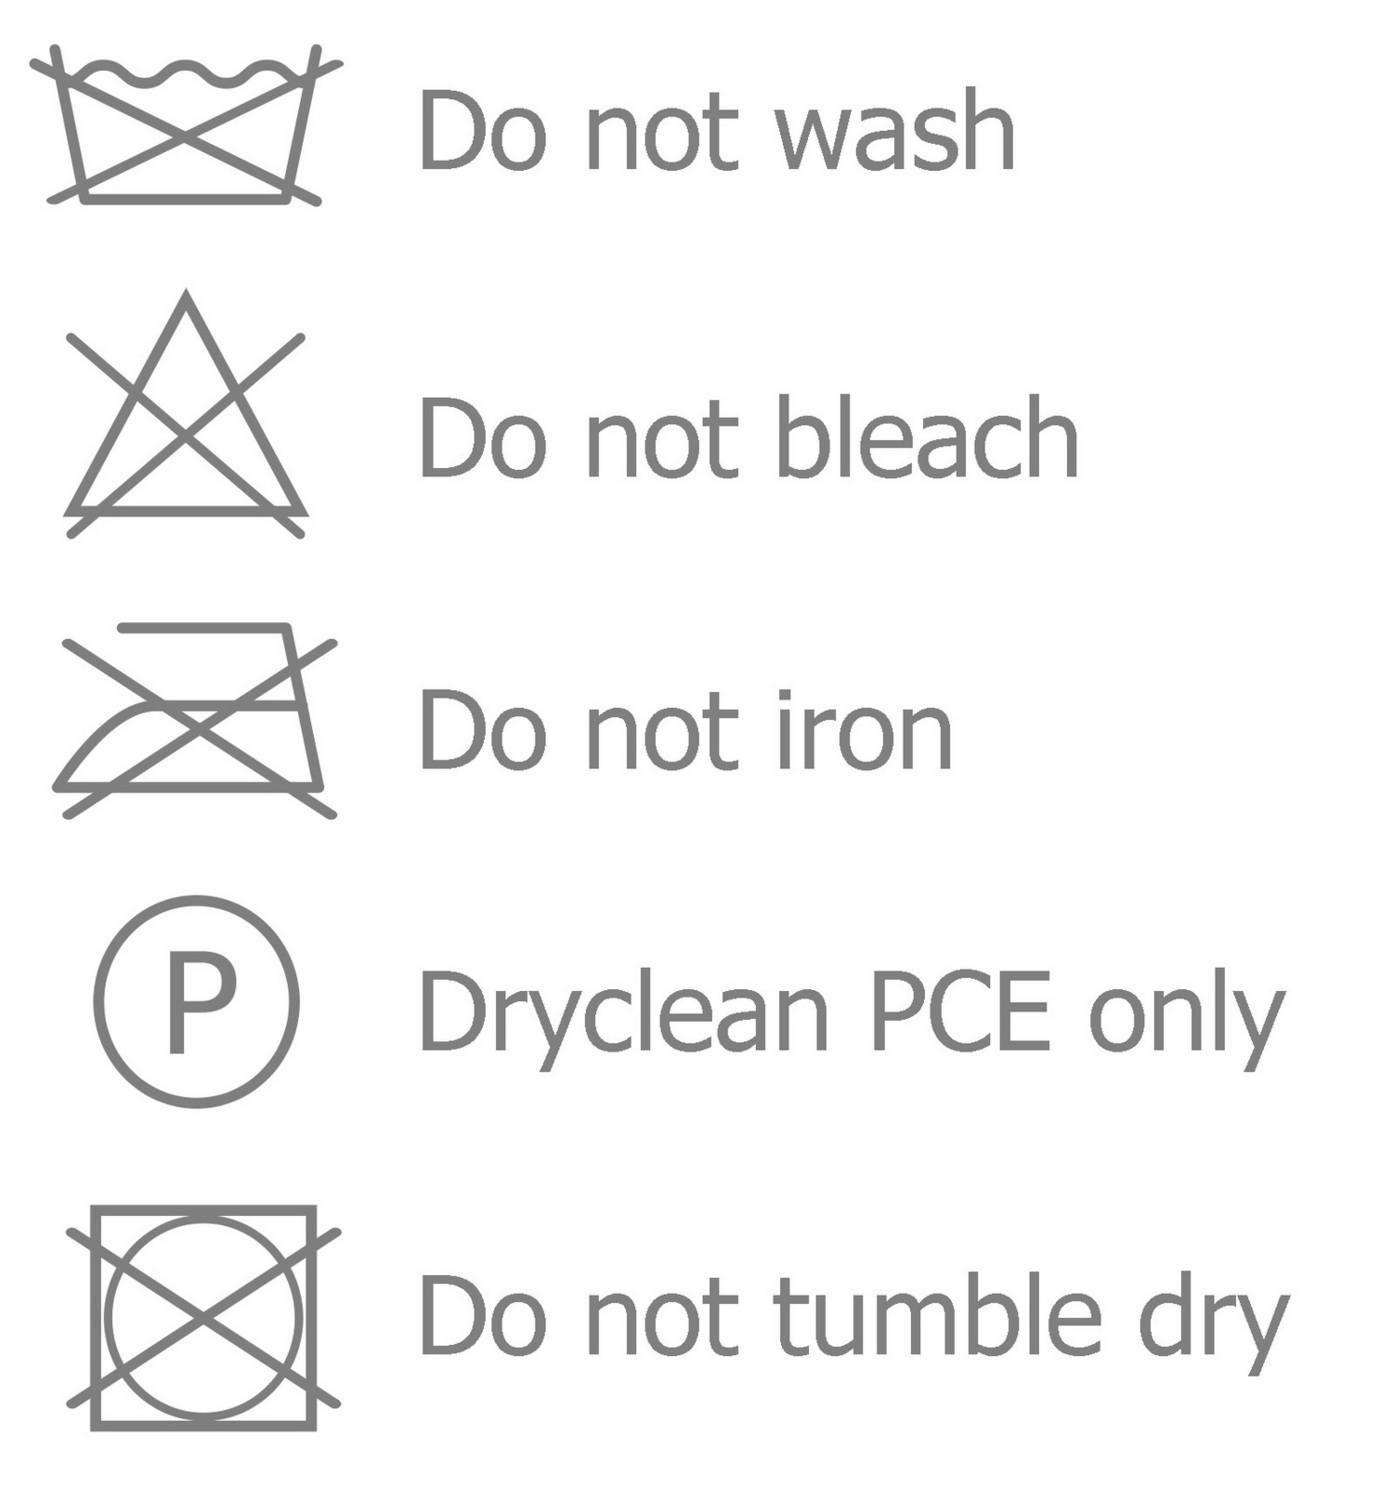 Chair Pad wash care guide 2.jpg